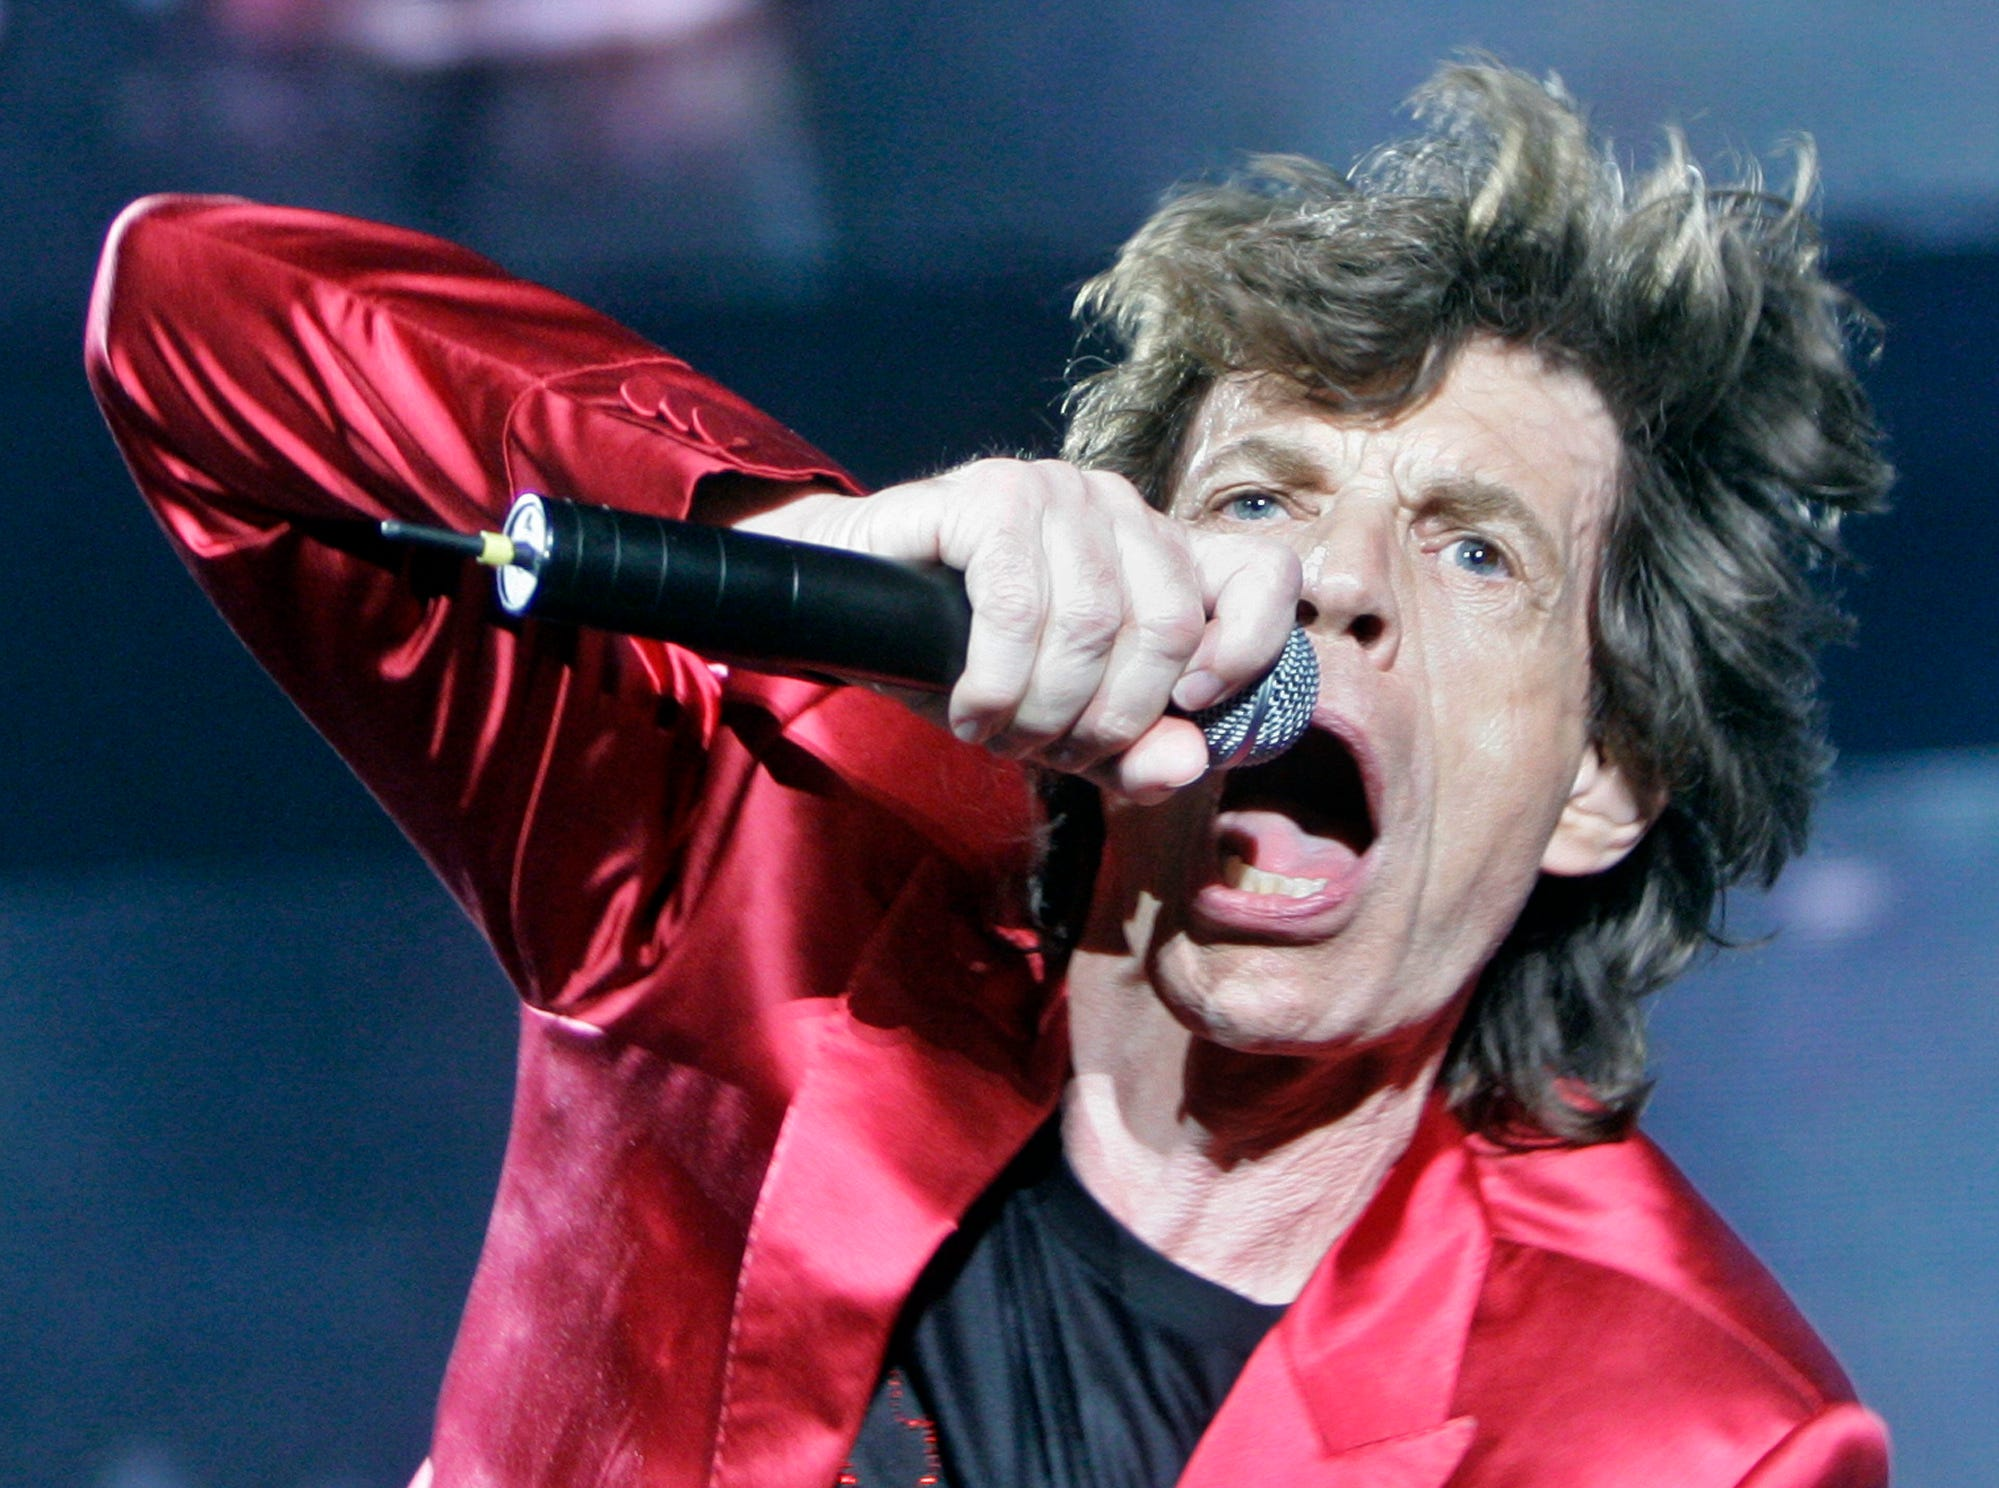 Mick Jagger performs during the concert of the Rolling Stones 'Bigger Bang' tour in Barcelona, Spain, Thursday, June 21, 2007. (AP Photo/Manu Fernandez)